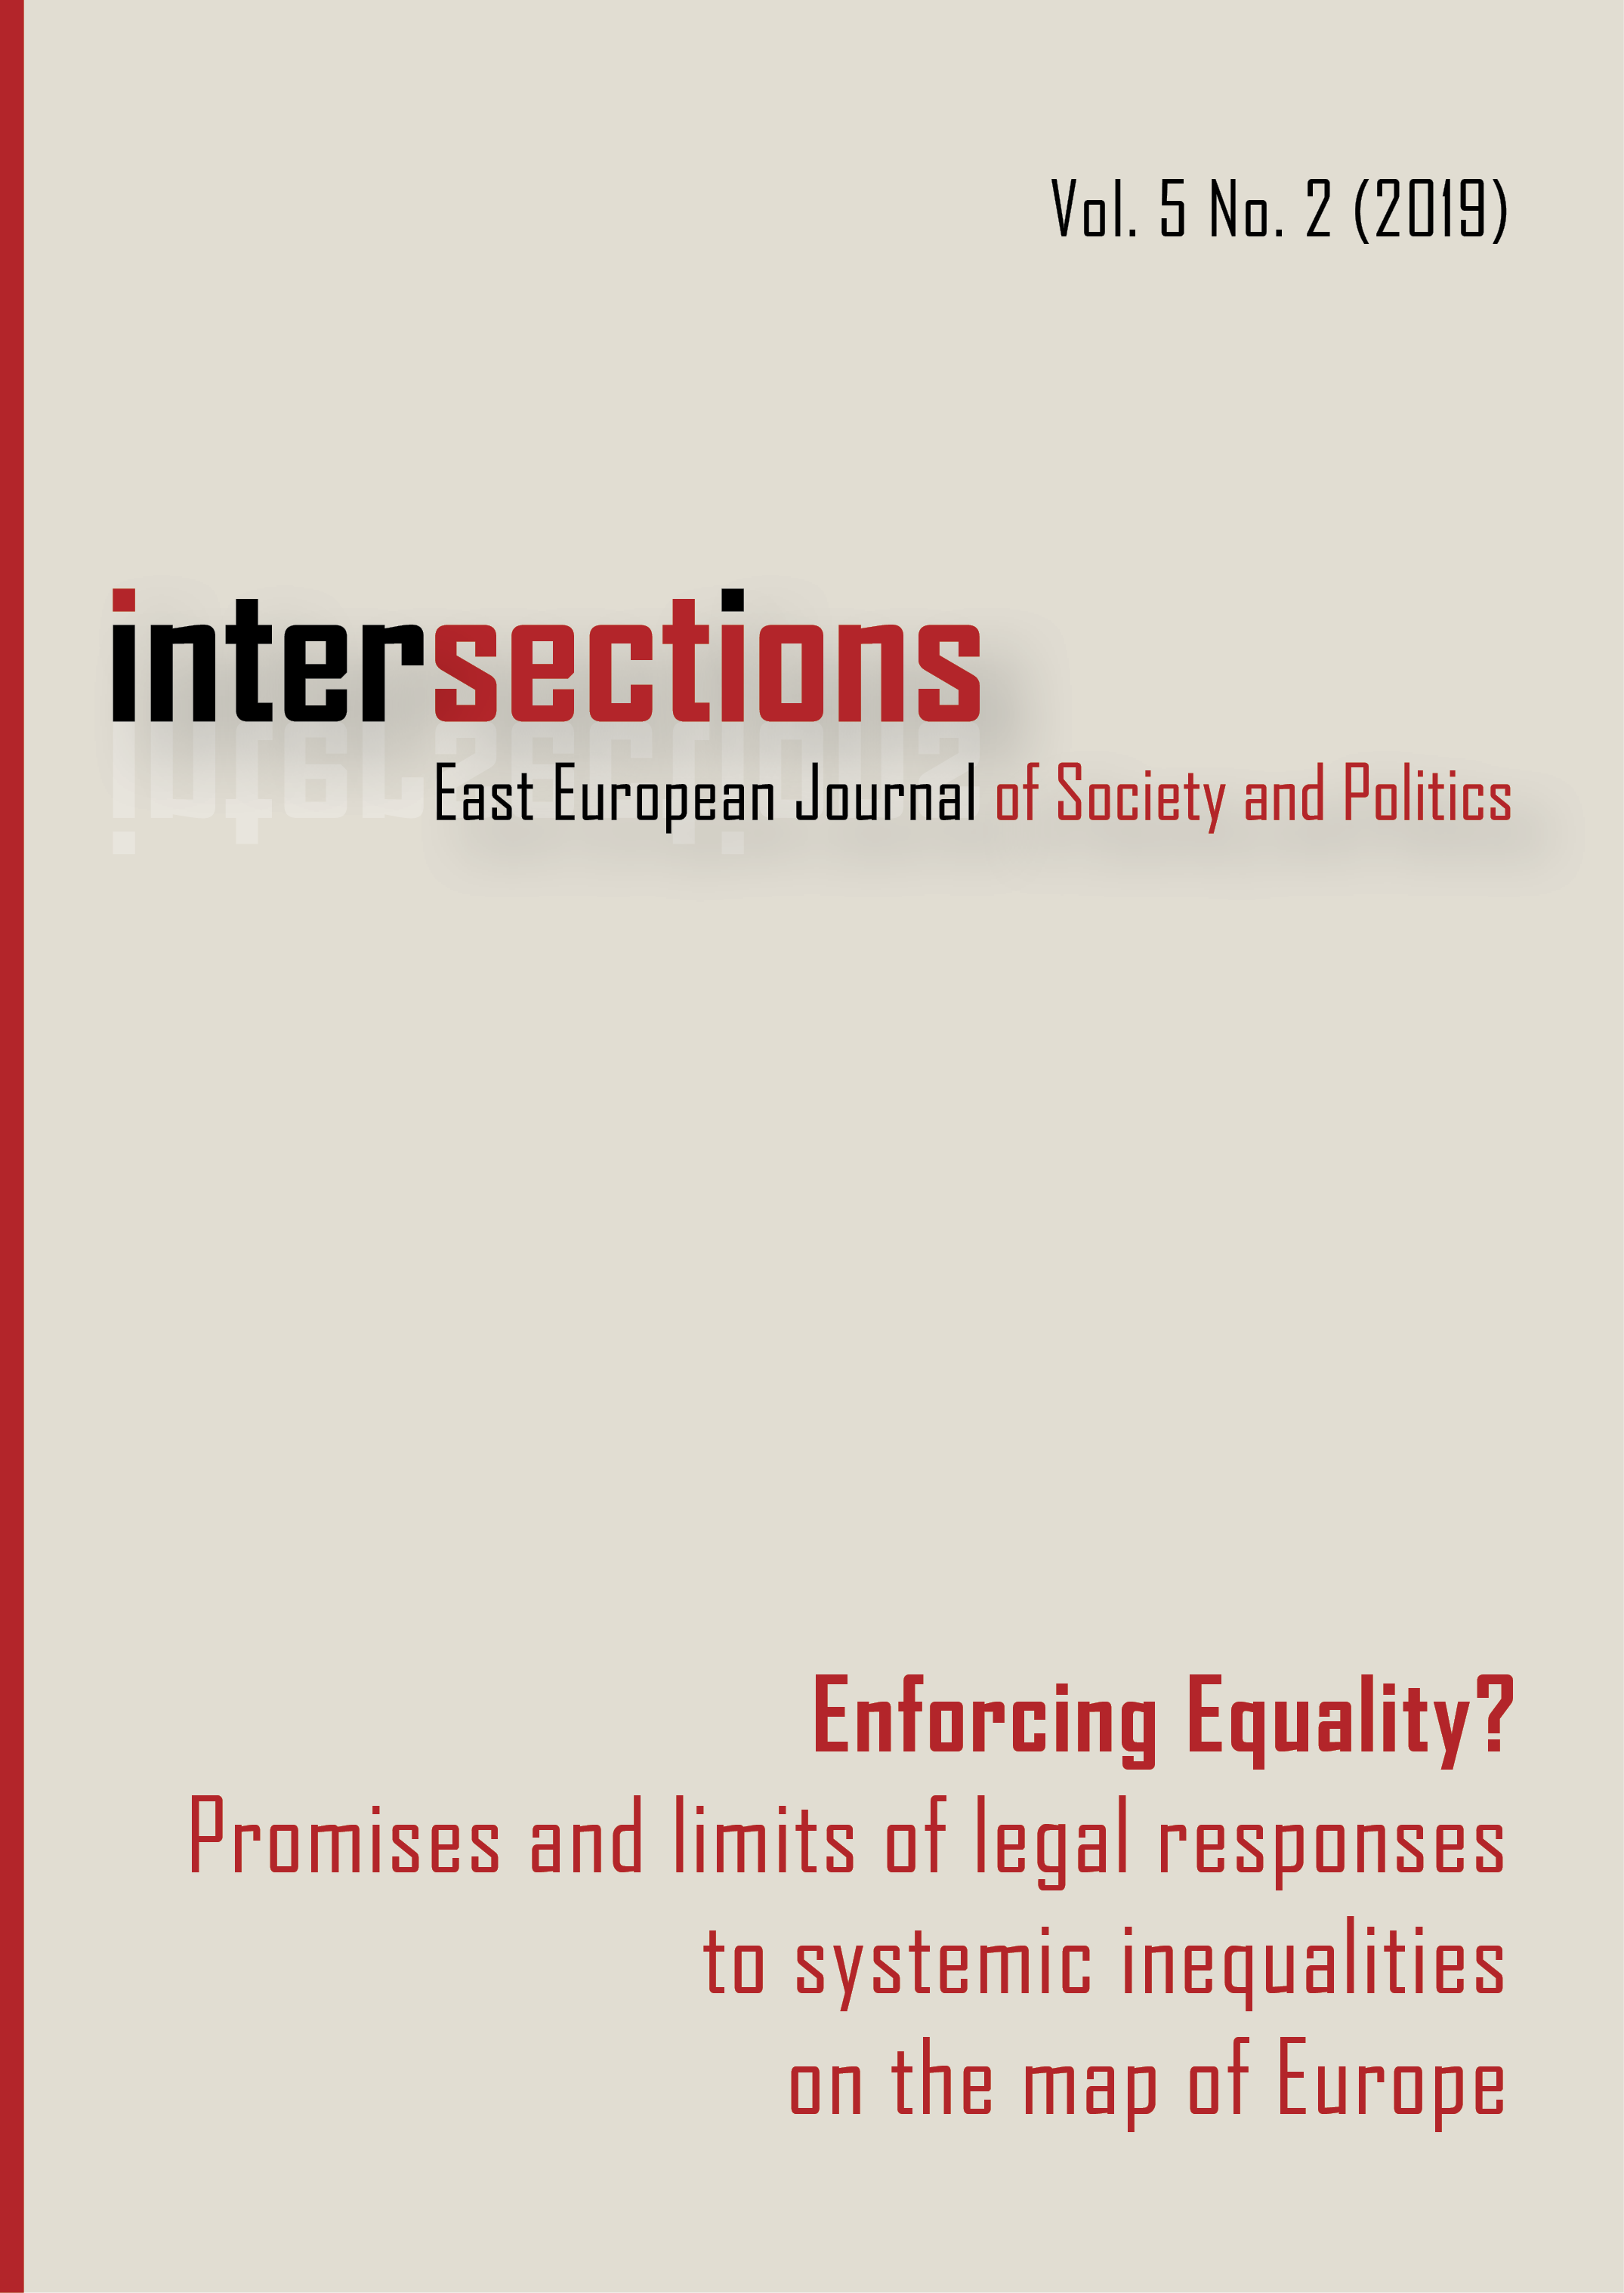 View Vol. 5 No. 2 (2019): Enforcing Equality? Promises and Limits of Legal Responses to Systemic Inequalities